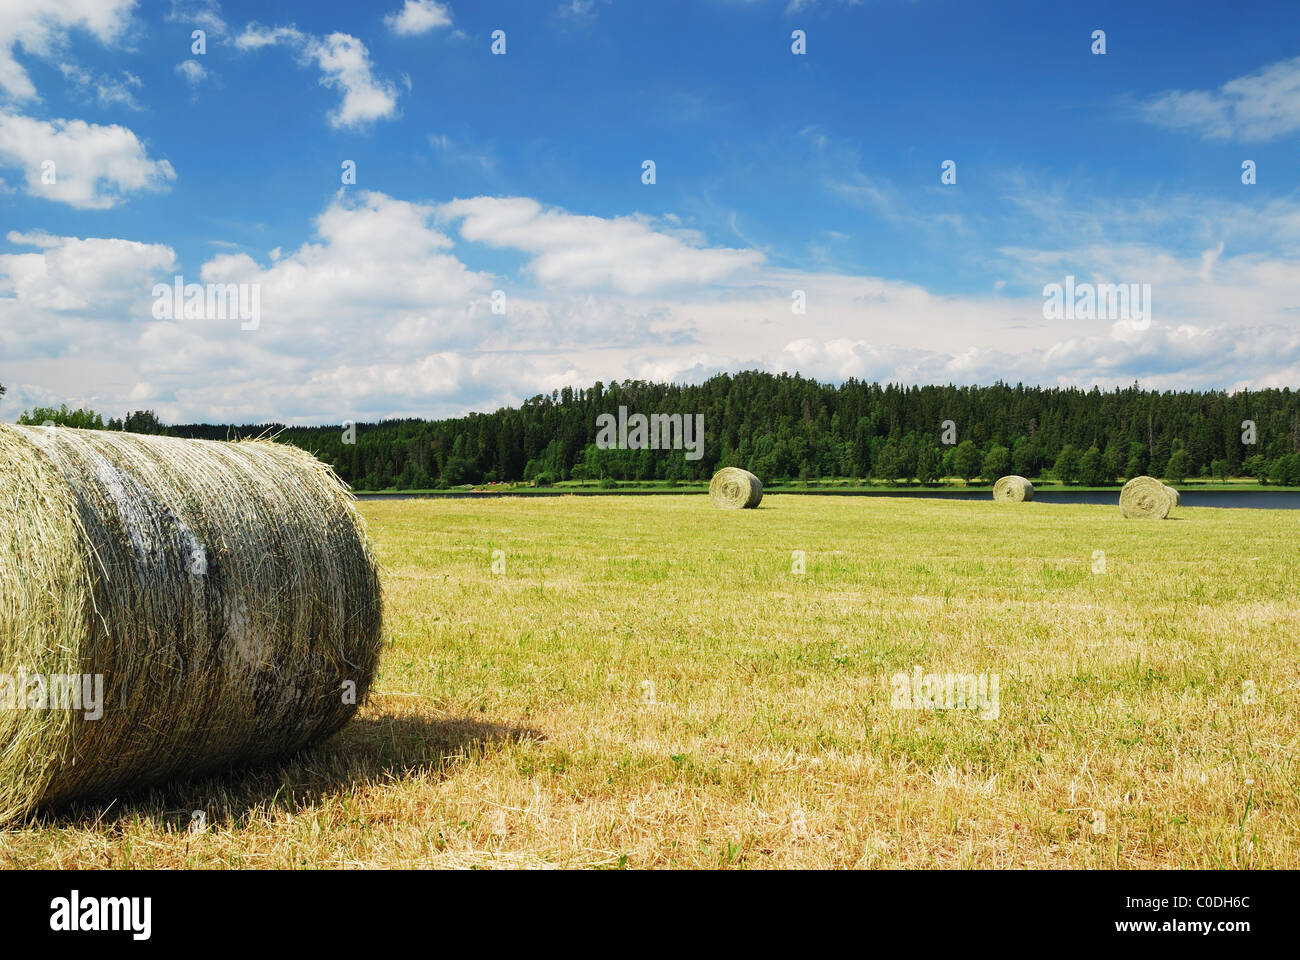 Swedish rural landscape with straw packages on the harvested field. - Stock Image